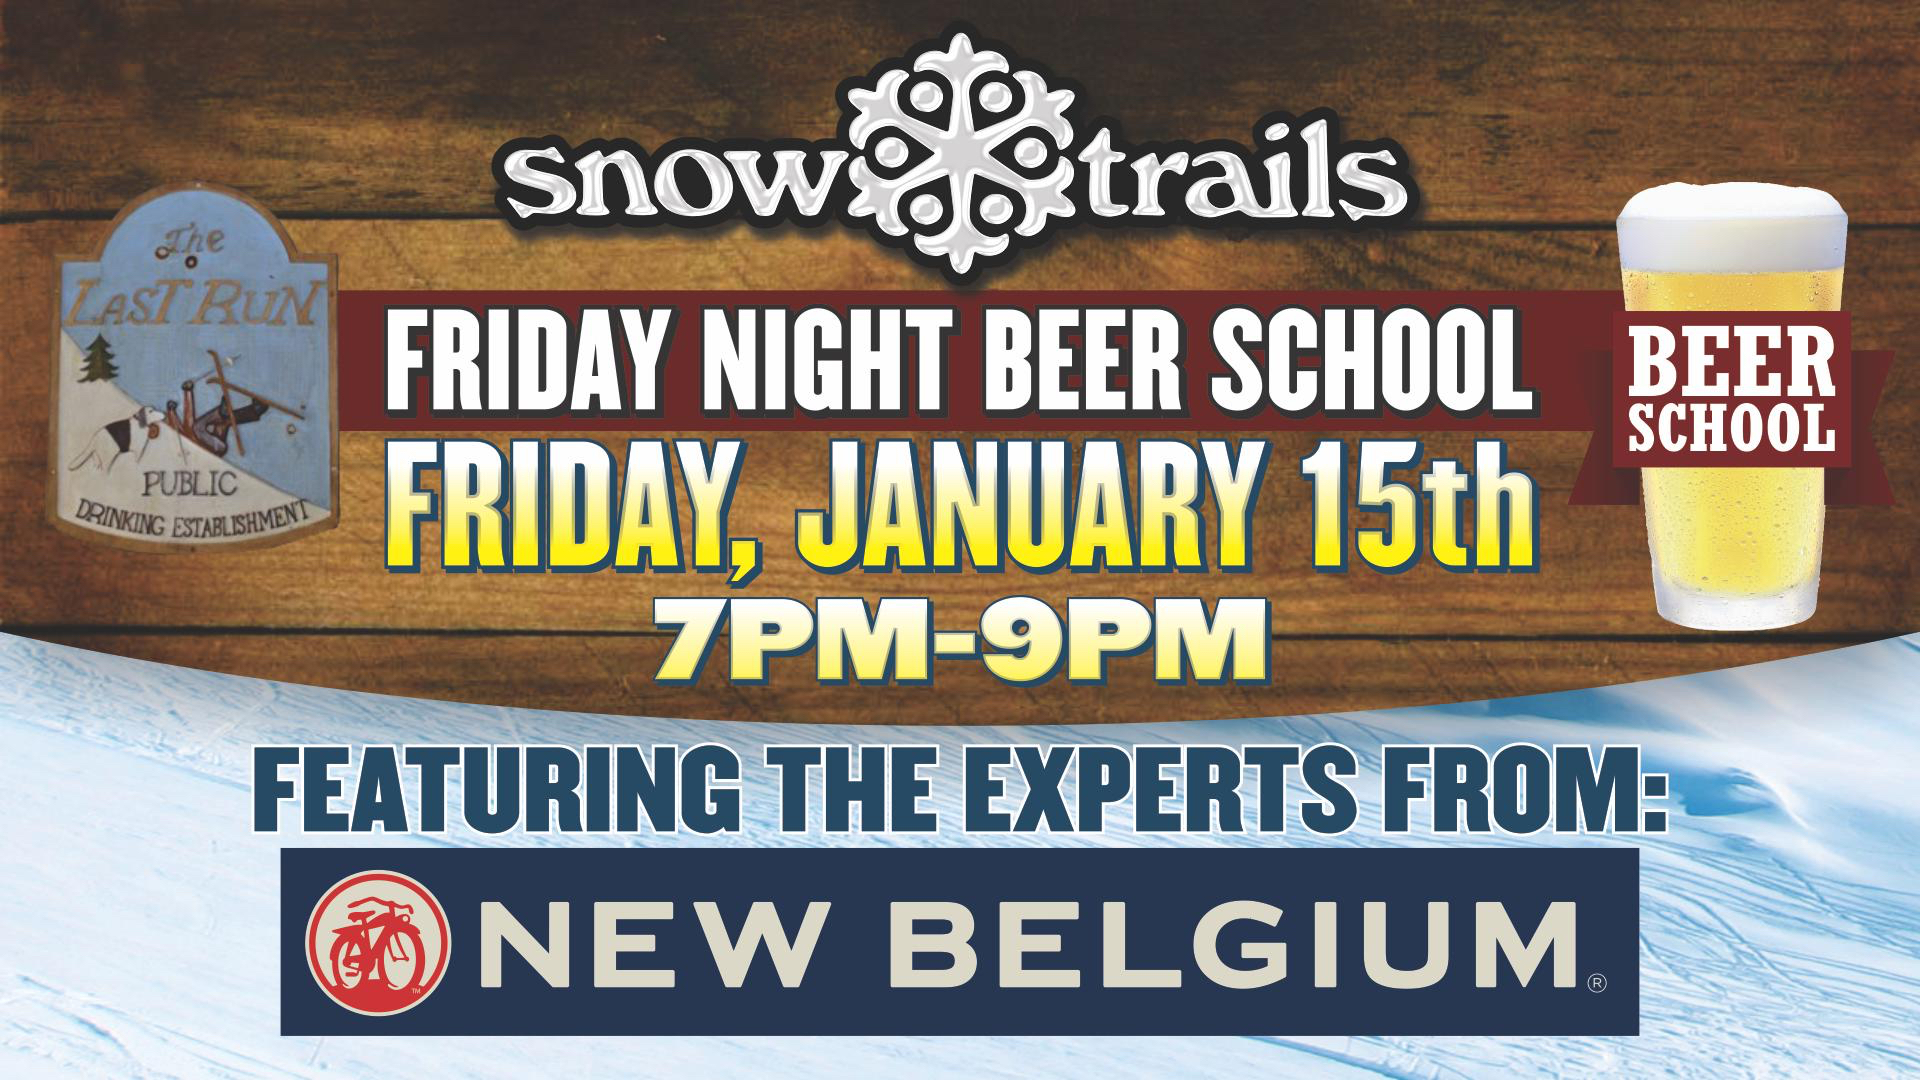 Beer School Featuring New Belgium in The Last Run Bar at Snow Trails